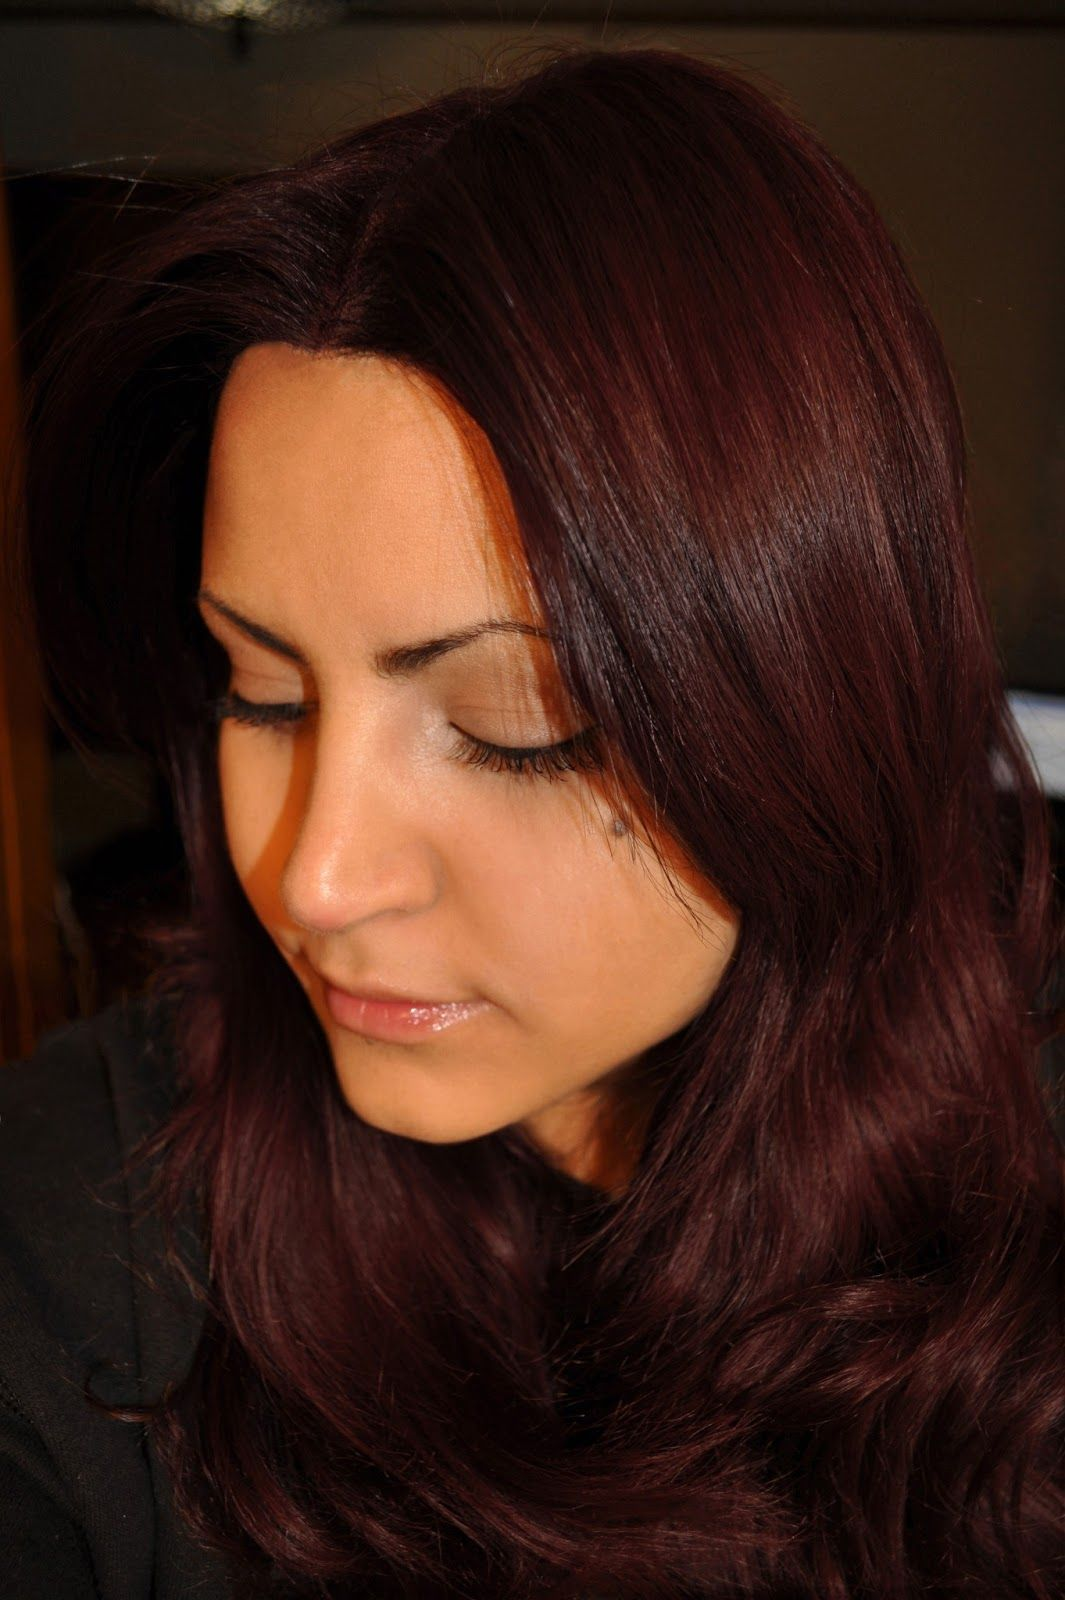 brown and red hair styles wine hair color search hair hair wine hair 9253 | 2733482a399e4e29f9d9253e45544f7c